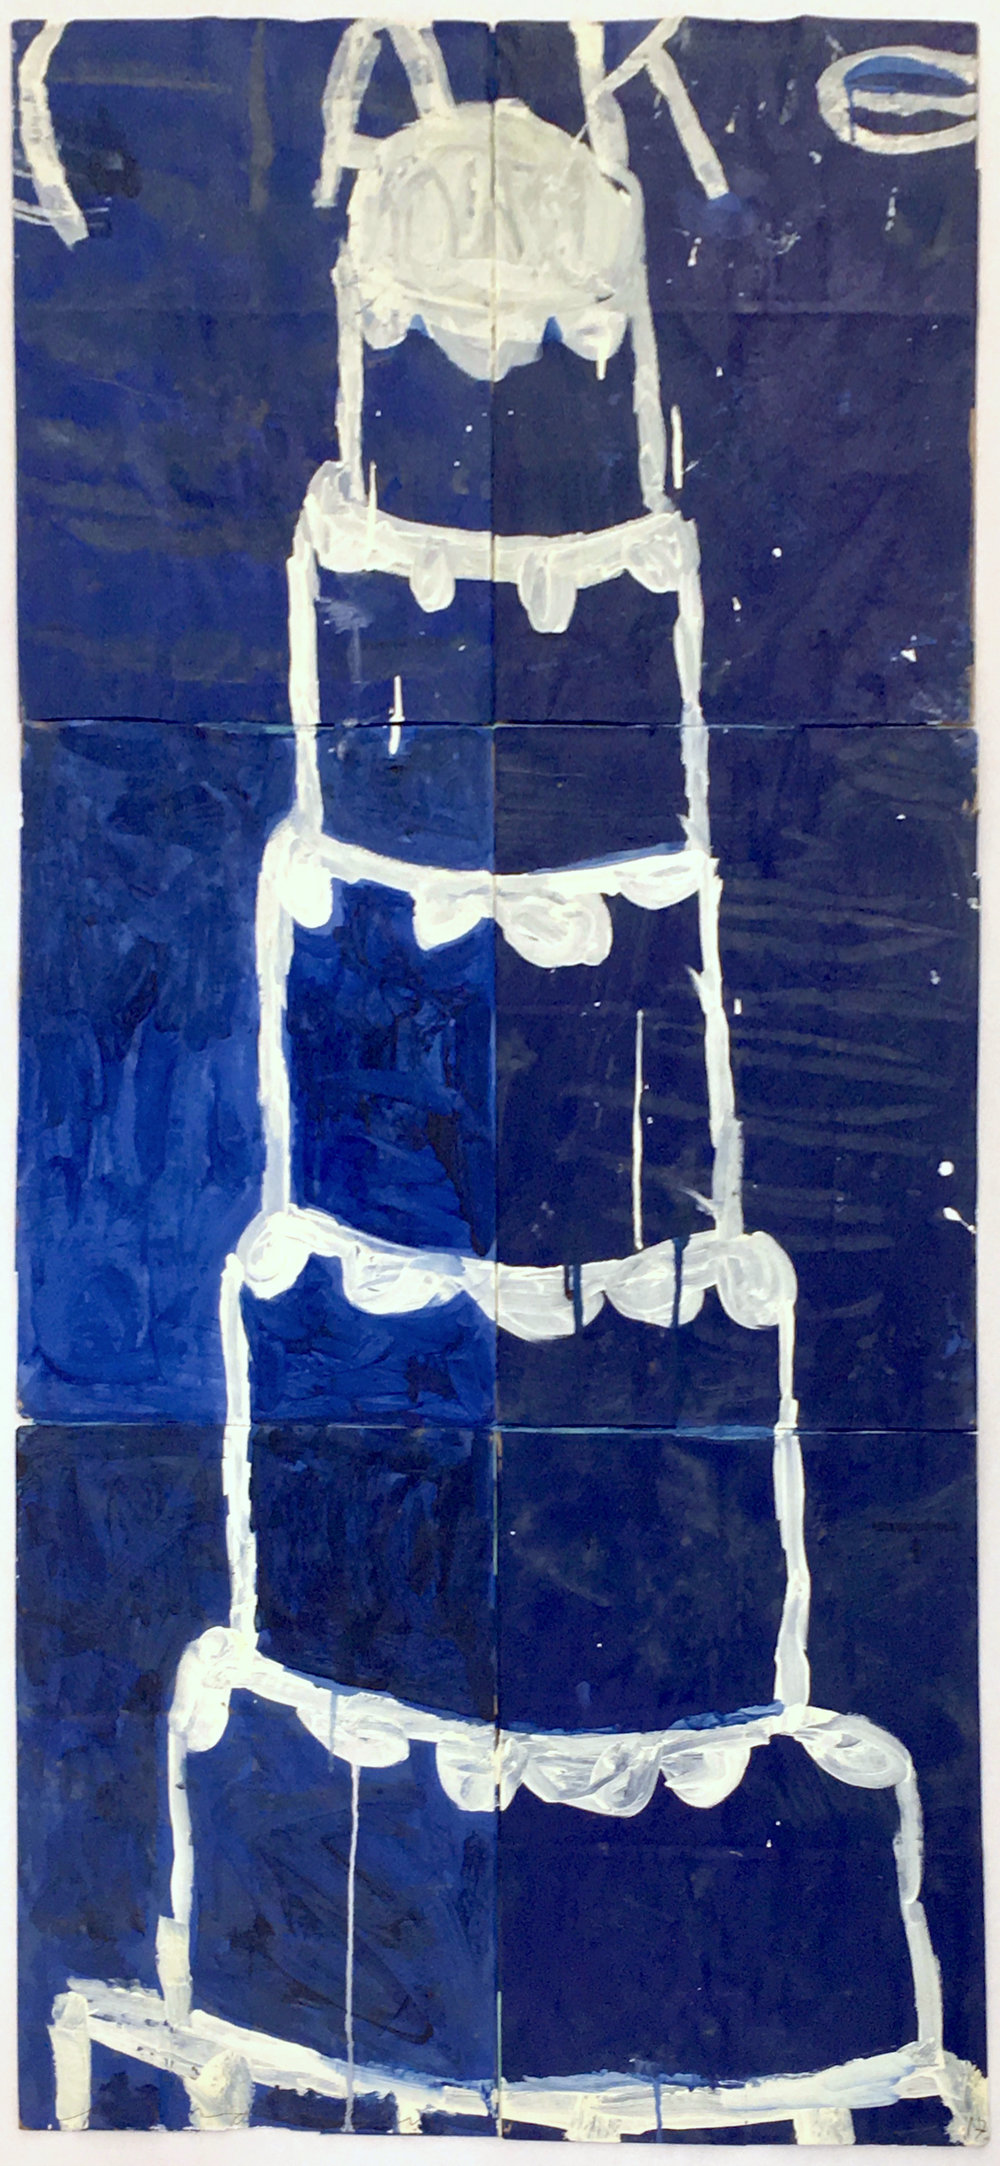 Gary Komarin     Cake - Creme on Blue,   2017 Mixed Media on paper 53 x 24 inches         For More Information    Artist Biography, Exhibitions & Collections